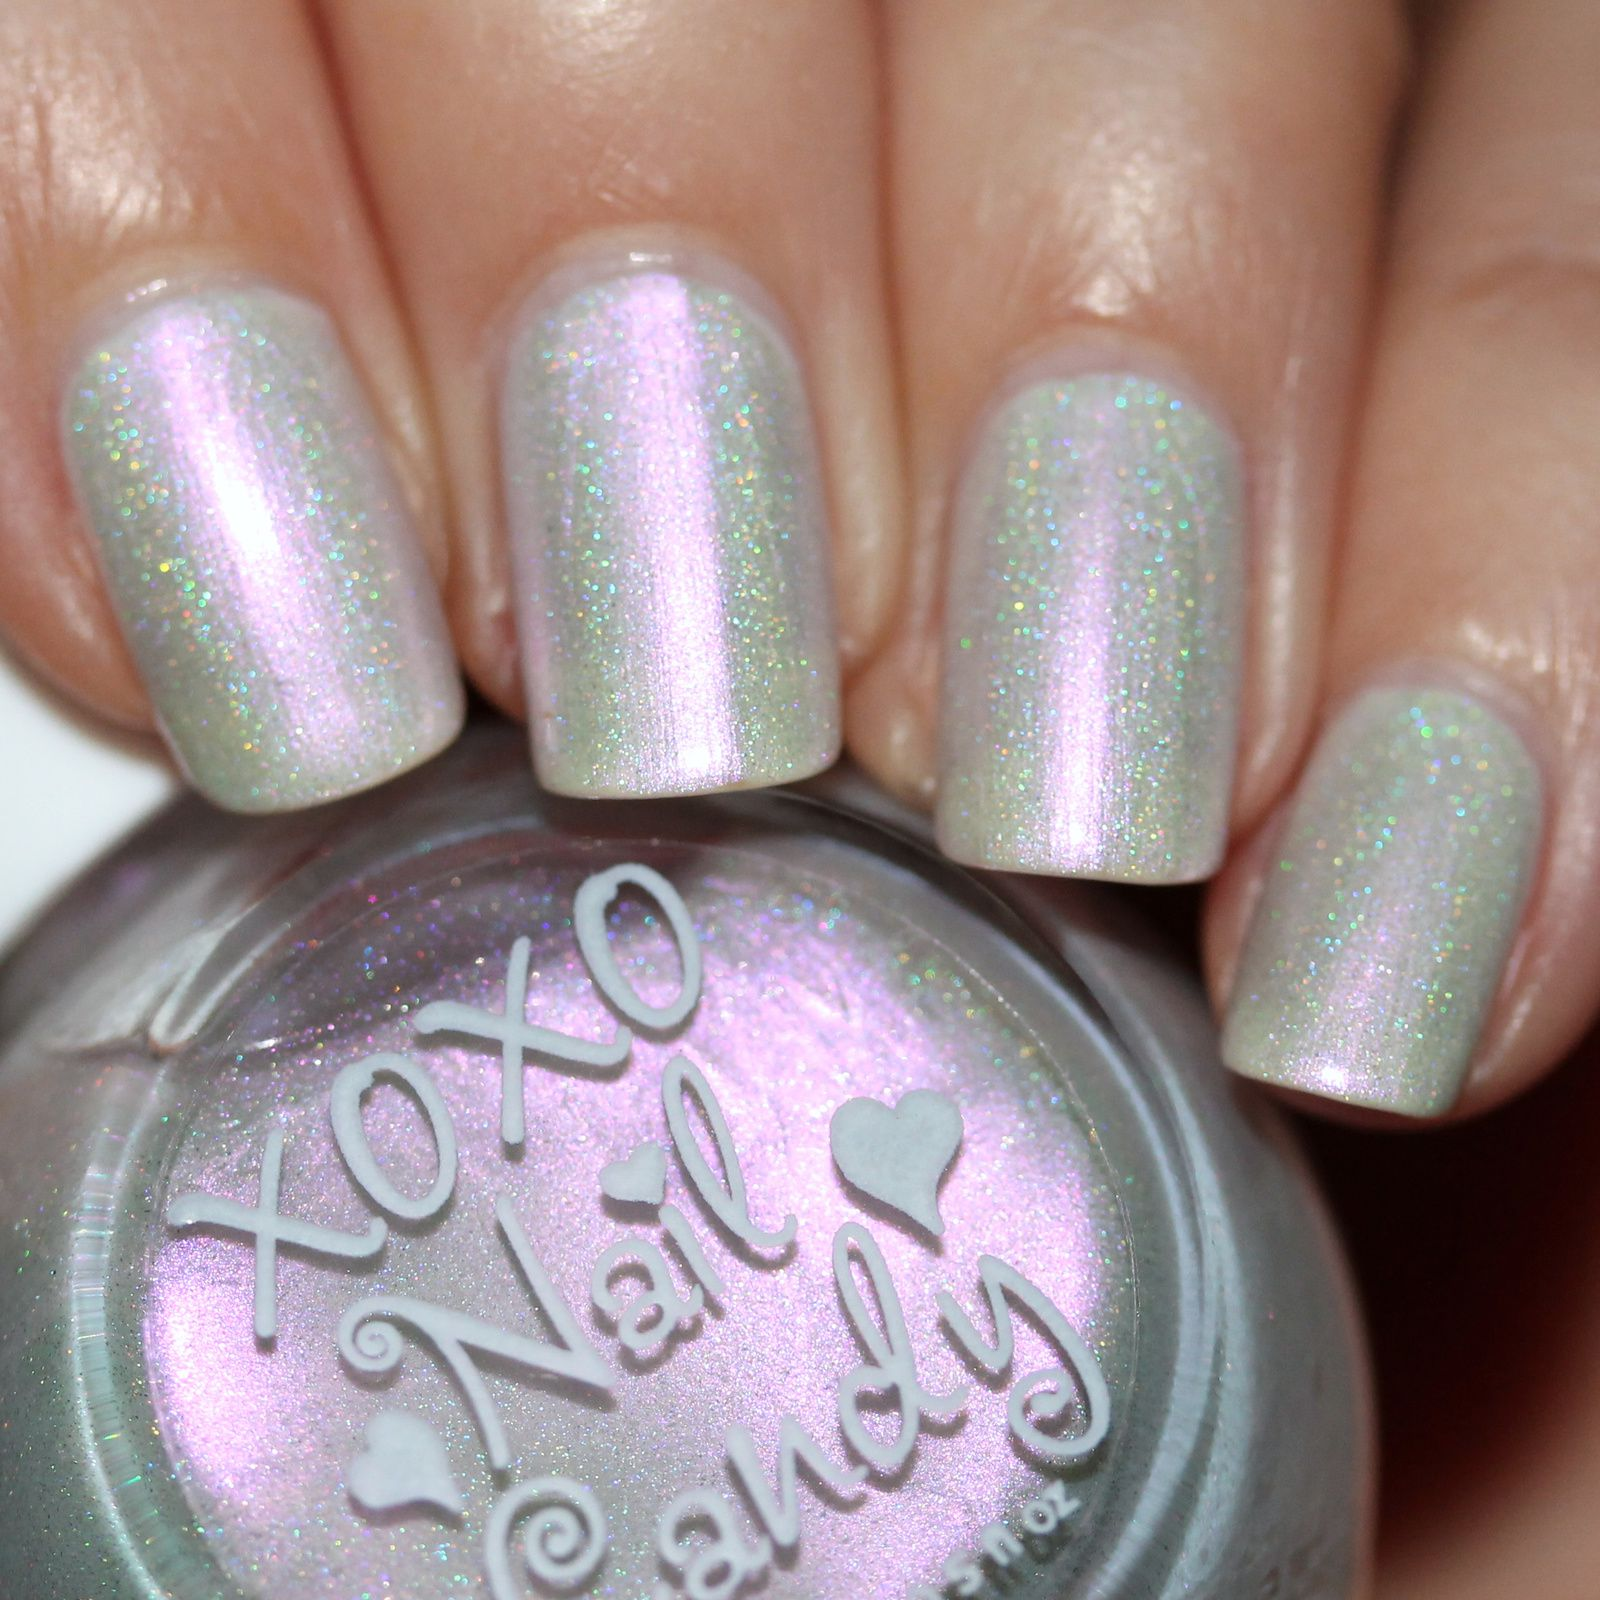 Duri Rejuvacote / Essie Marshmallow / XOXO Nail Candy Sitting on a Fluffy Cloud /  Sally Hansen Miracle Gel Top Coat